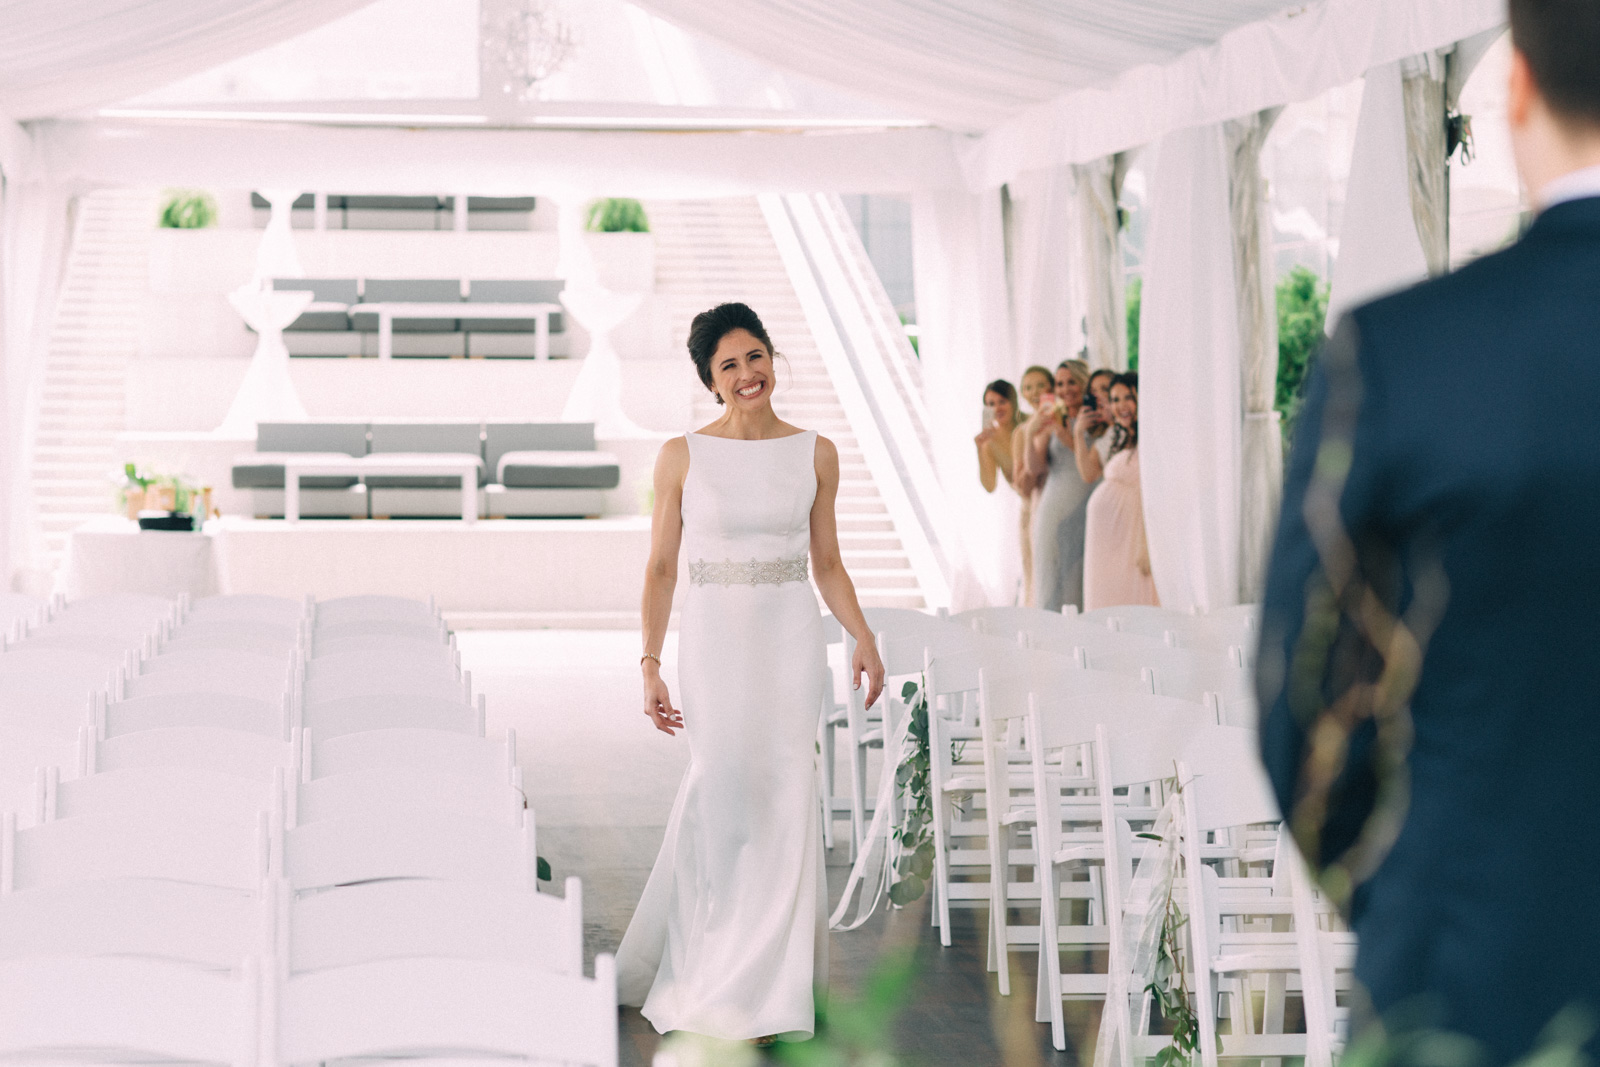 Malaparte-wedding-photography-Toronto-by-Sam-Wong-of-Visual-Cravings_25